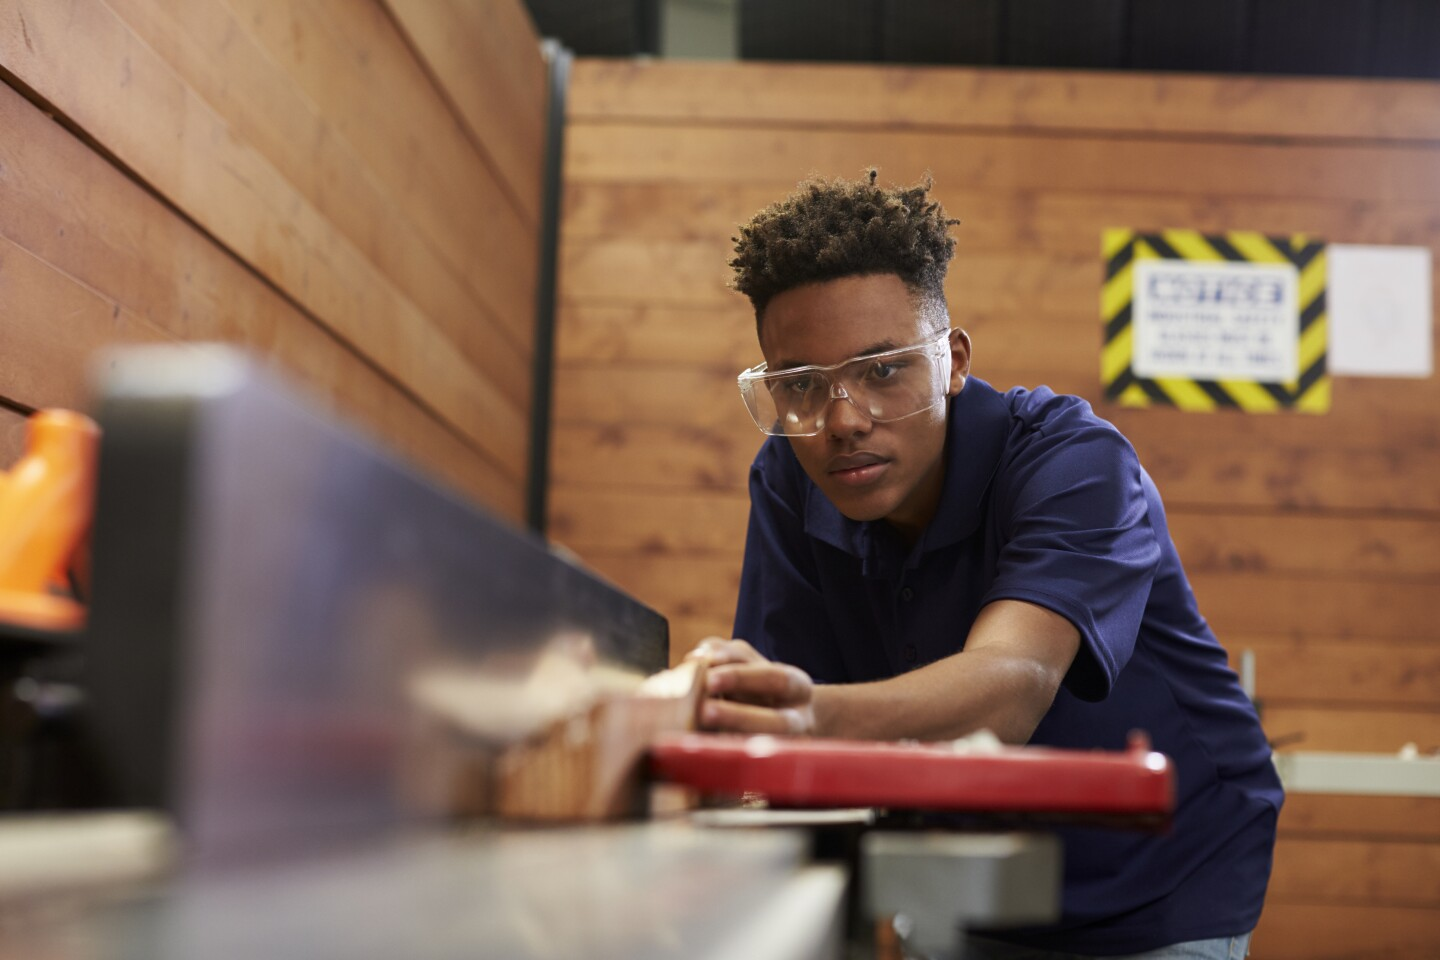 A carpenter uses a plane in a woodworking woodshop.